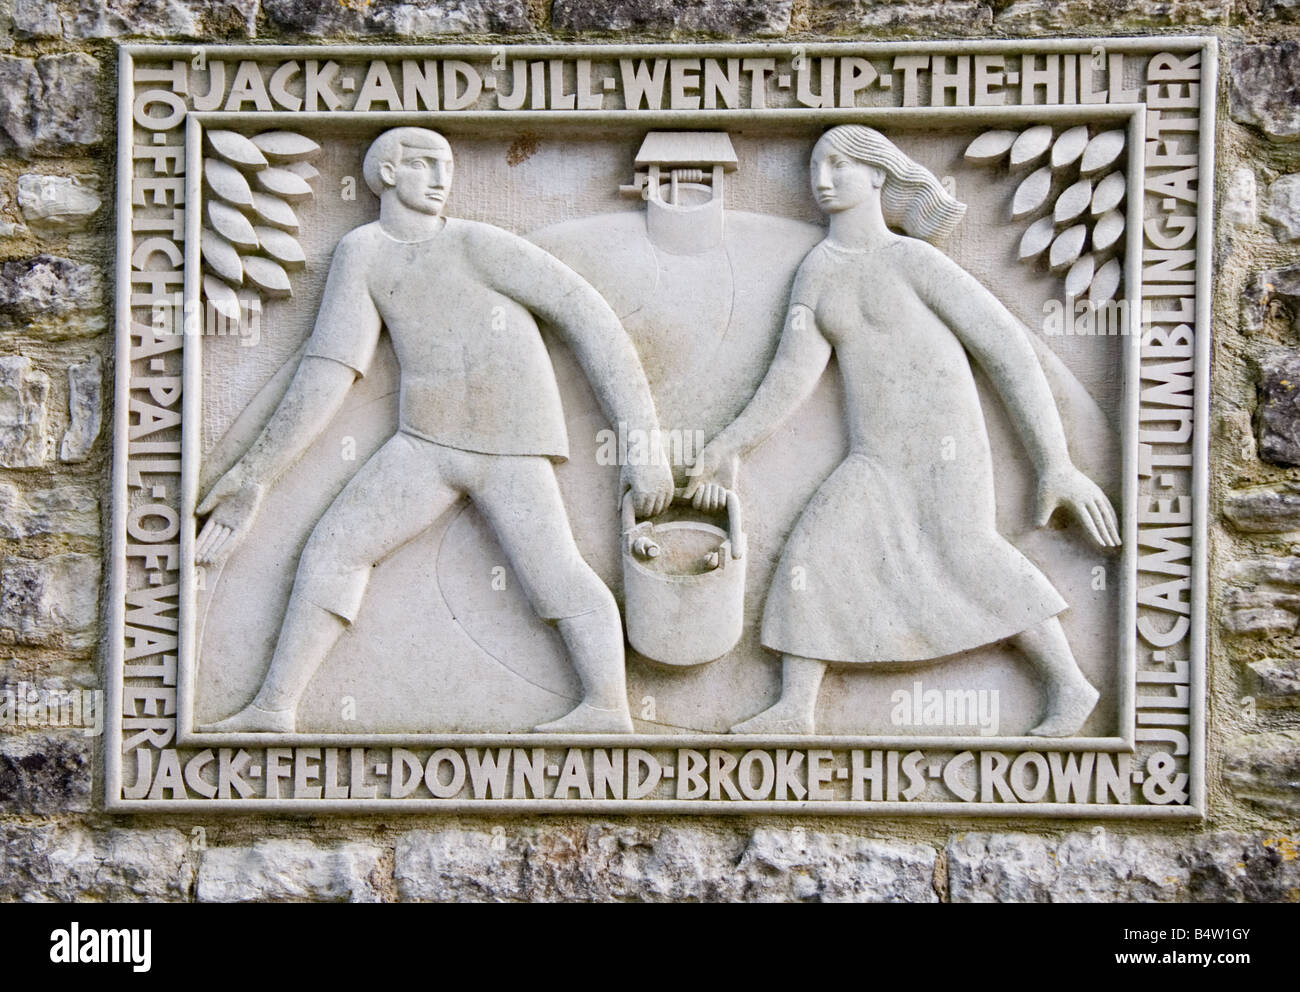 A stone plaque depicting the Jack and Jill Nursery Rhyme, Kilmersdon, Somerset, UK - Stock Image